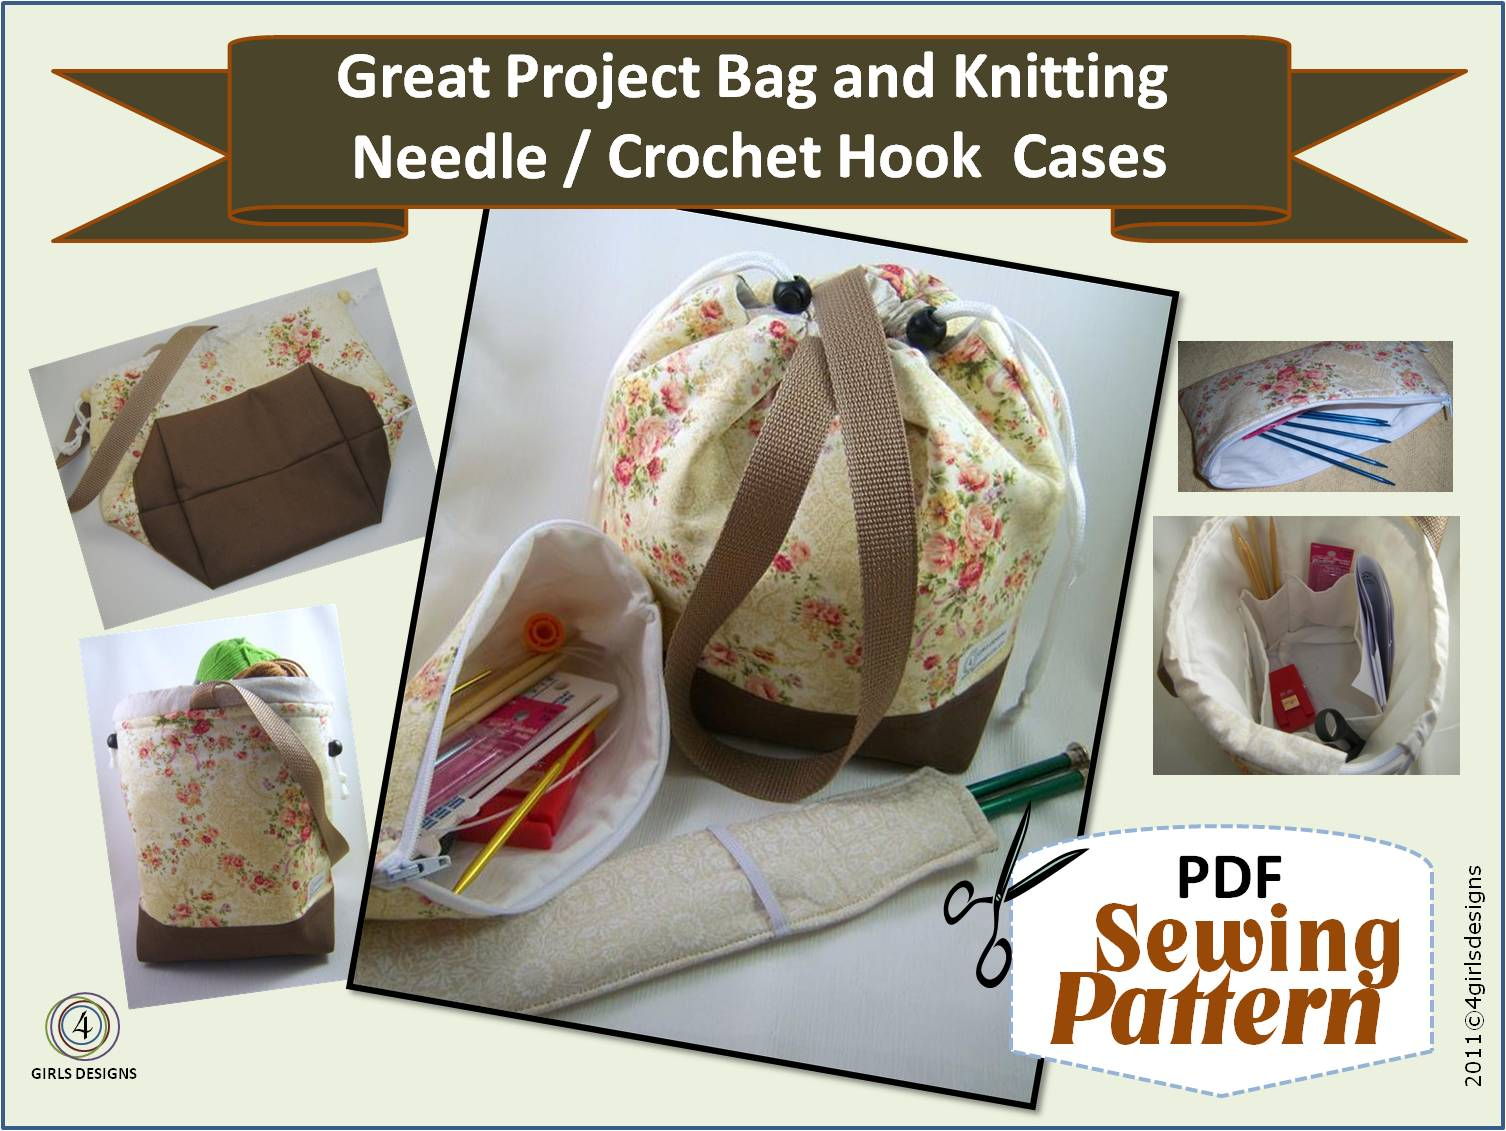 4 Girls Designs: NEW Sewing Patterns for Knitters, Crochet ...